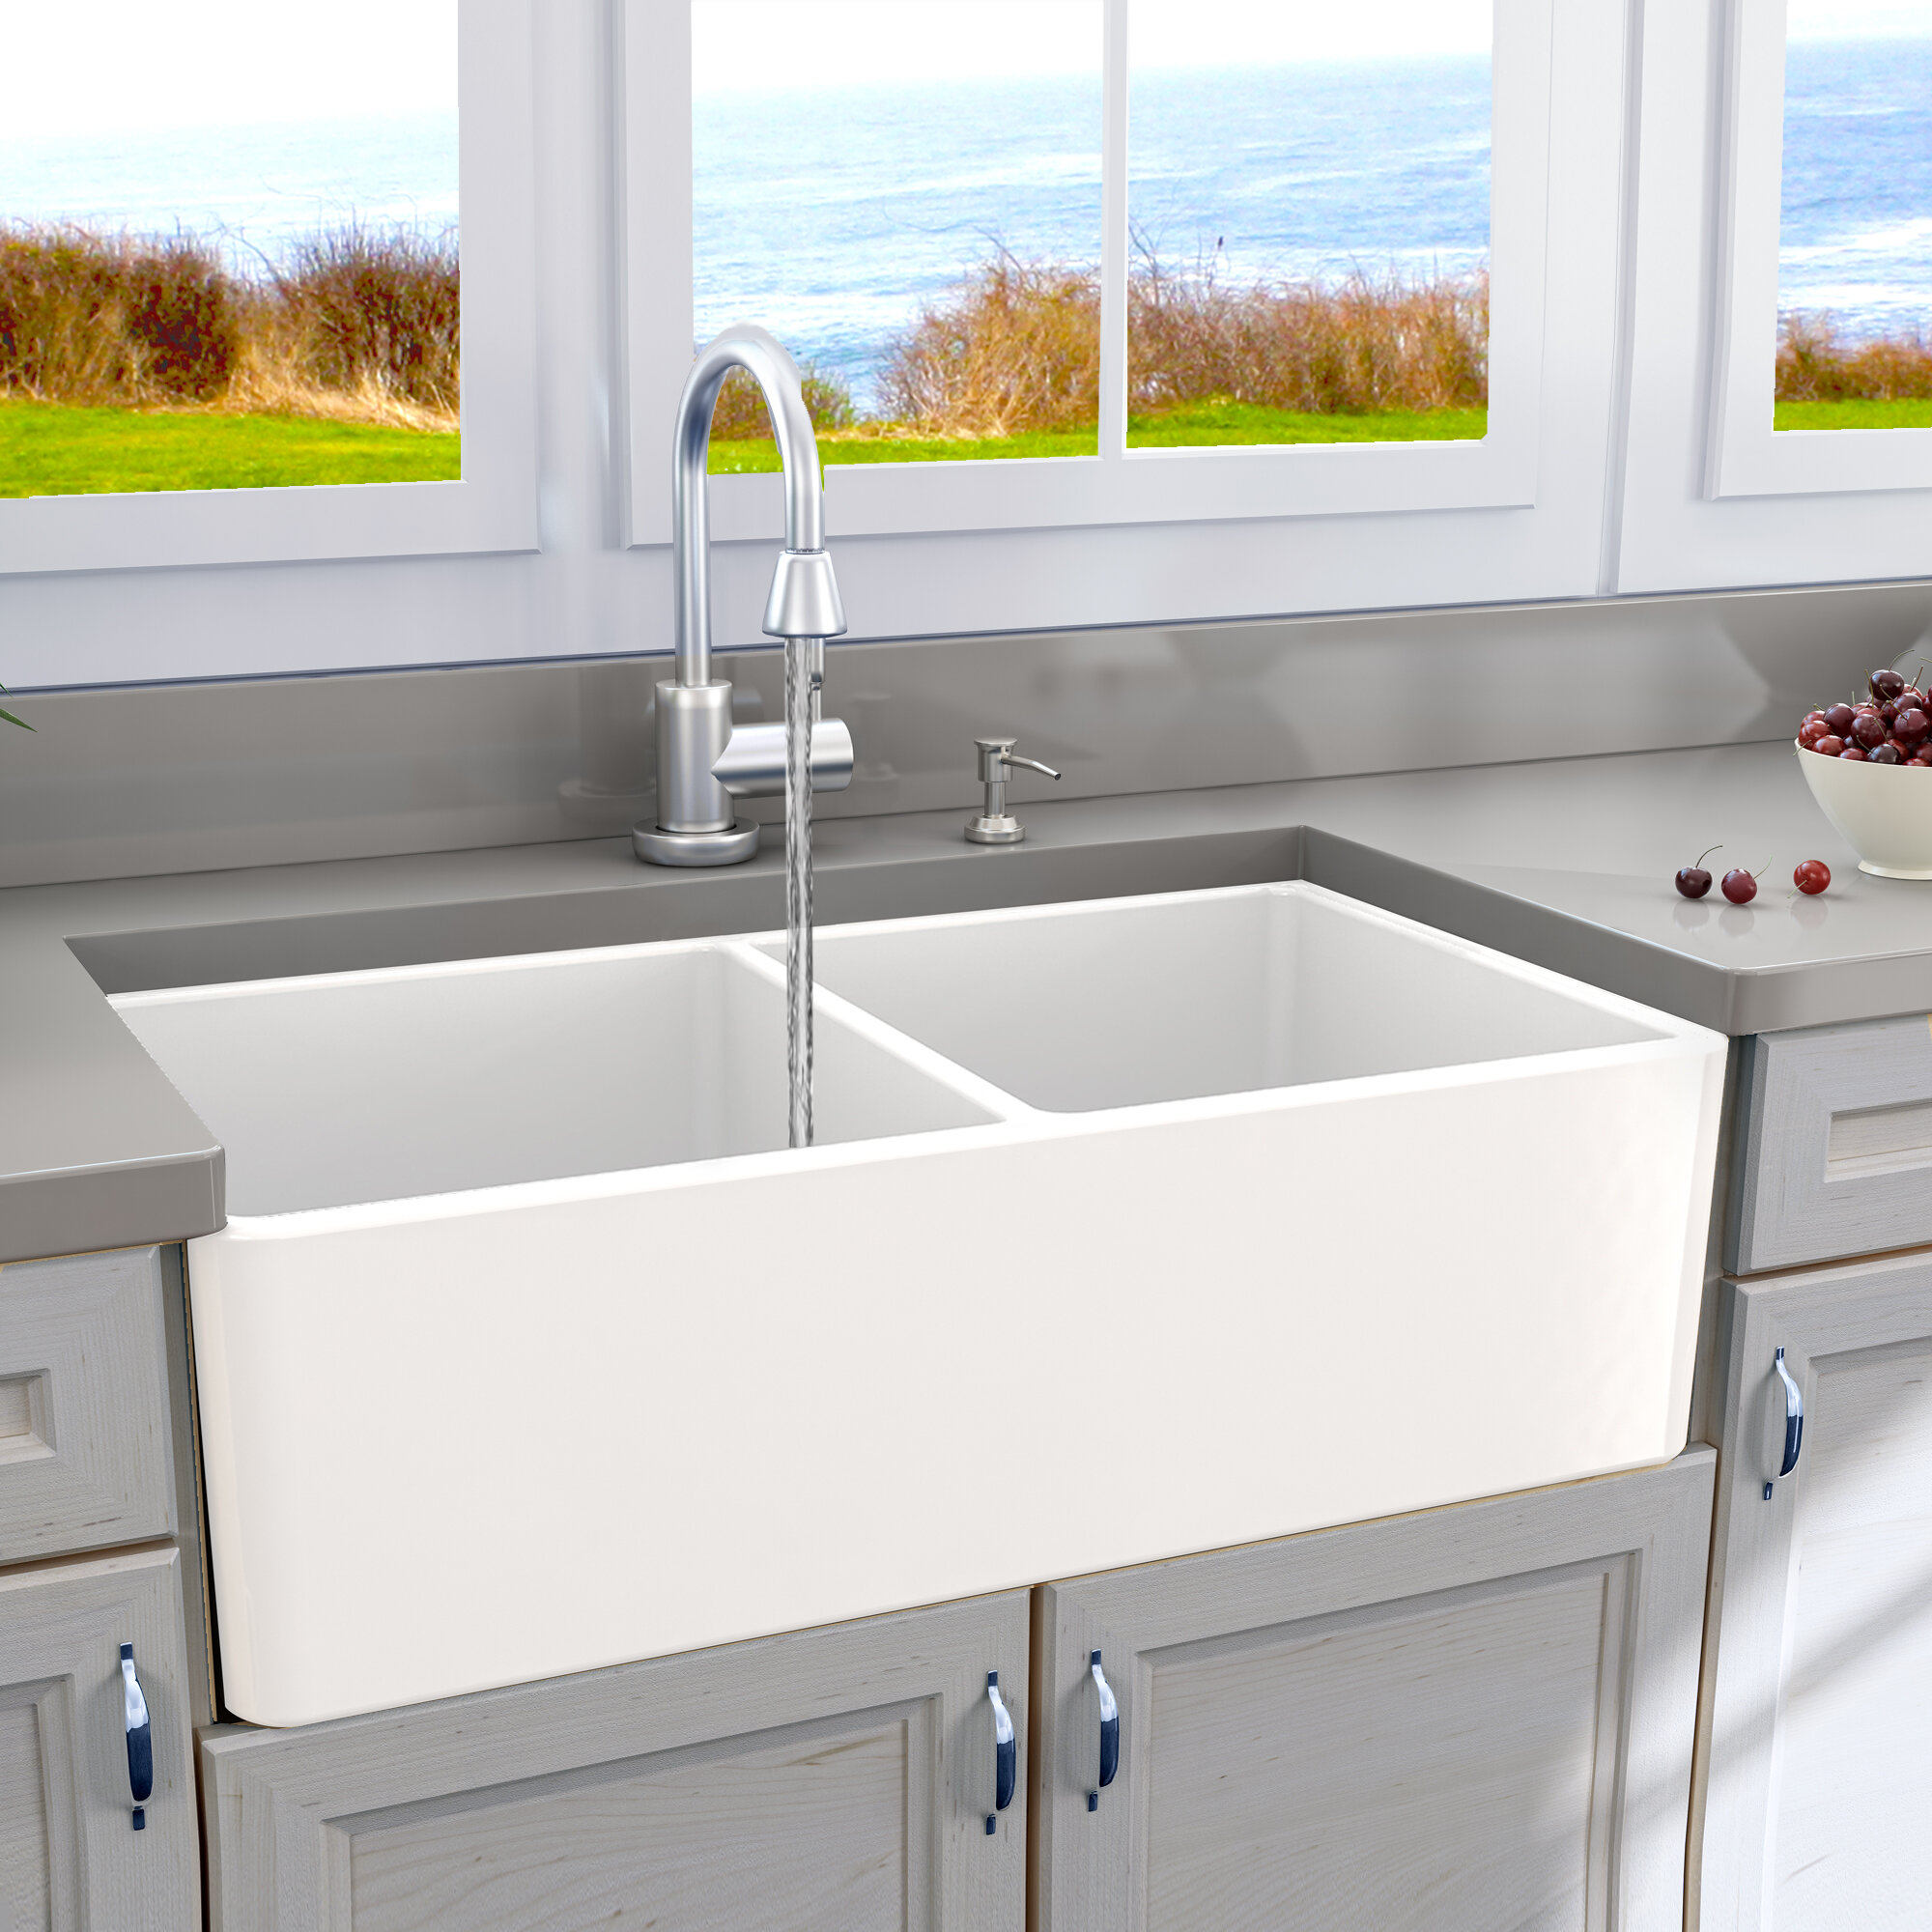 https://secure.img2-fg.wfcdn.com/im/75648096/compr-r85/4854/48548083/cape-33-x-18-double-basin-farmhouse-kitchen-sink.jpg